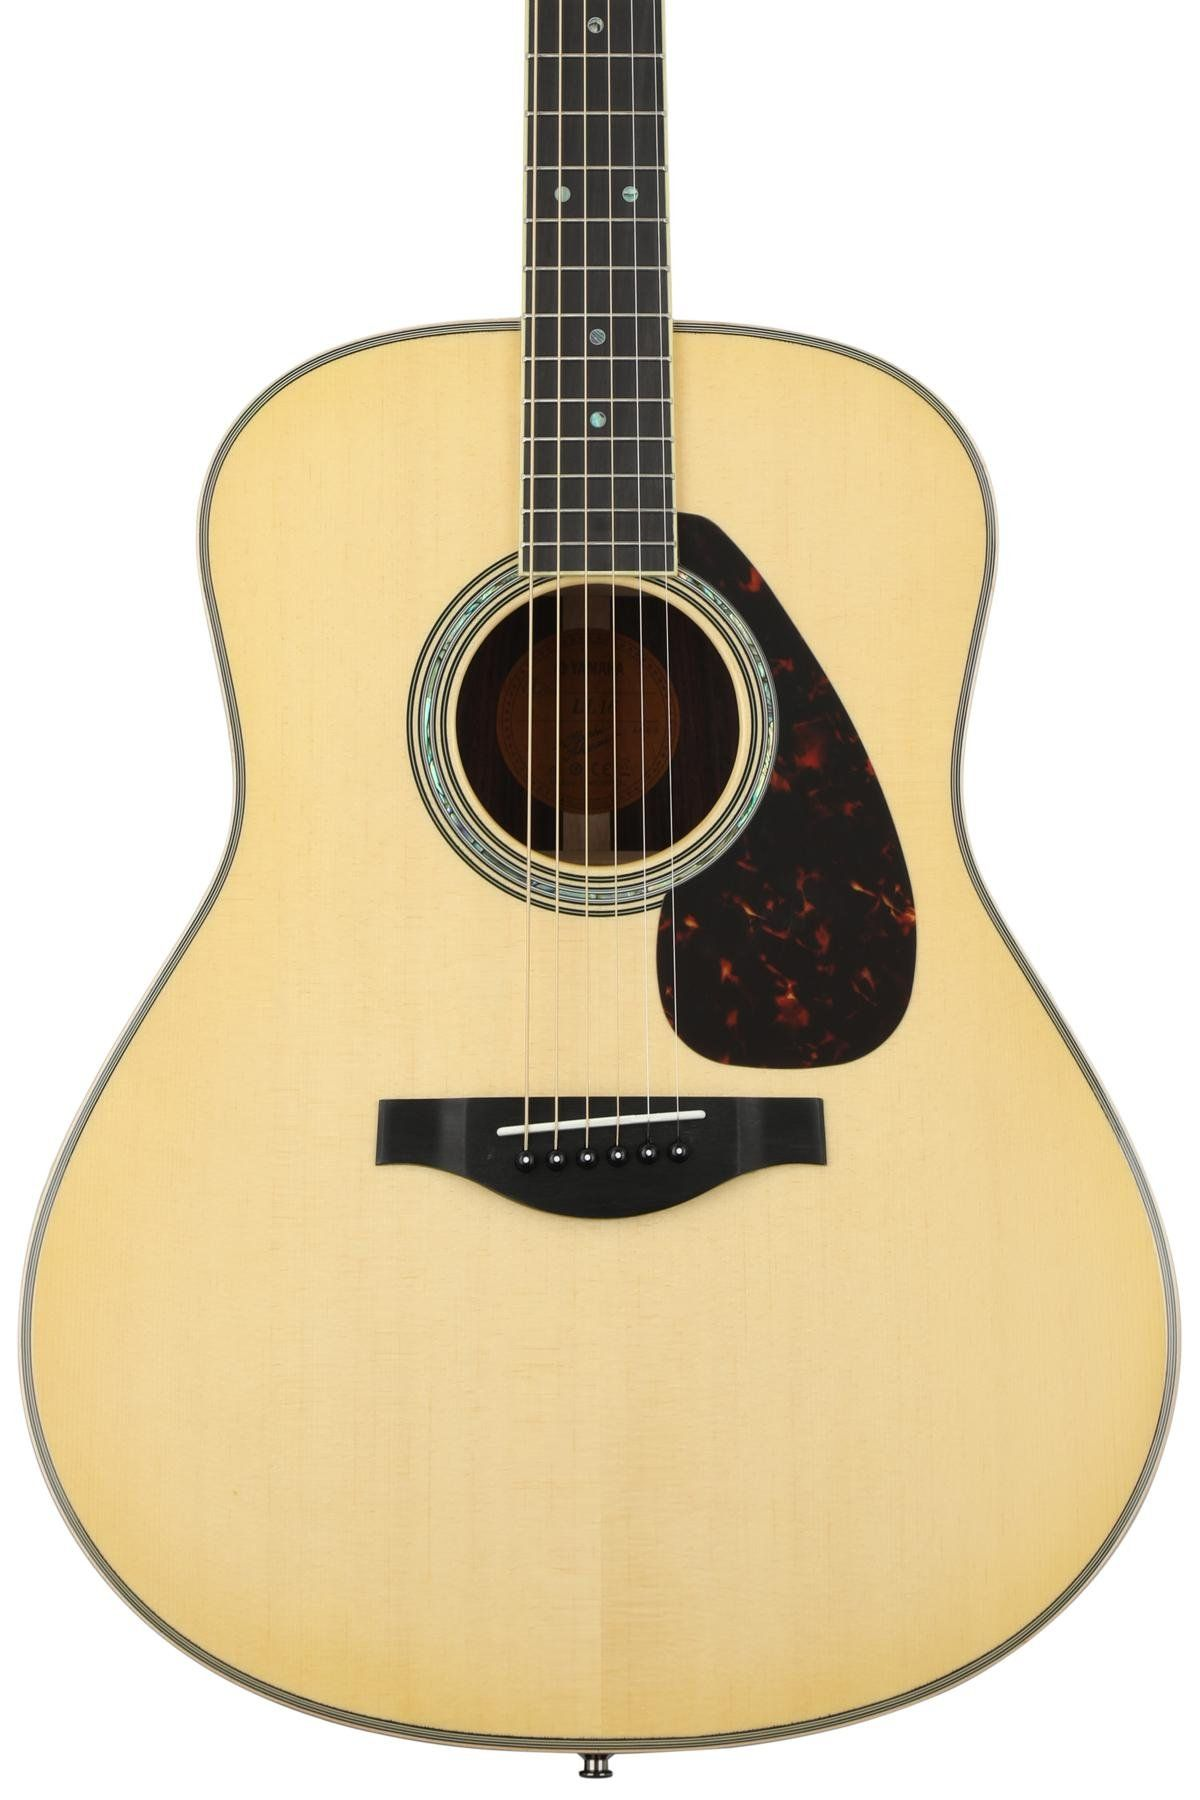 Yamaha Ll16 Are Original Jumbo Natural Yamaha Guitar Guitar Yamaha